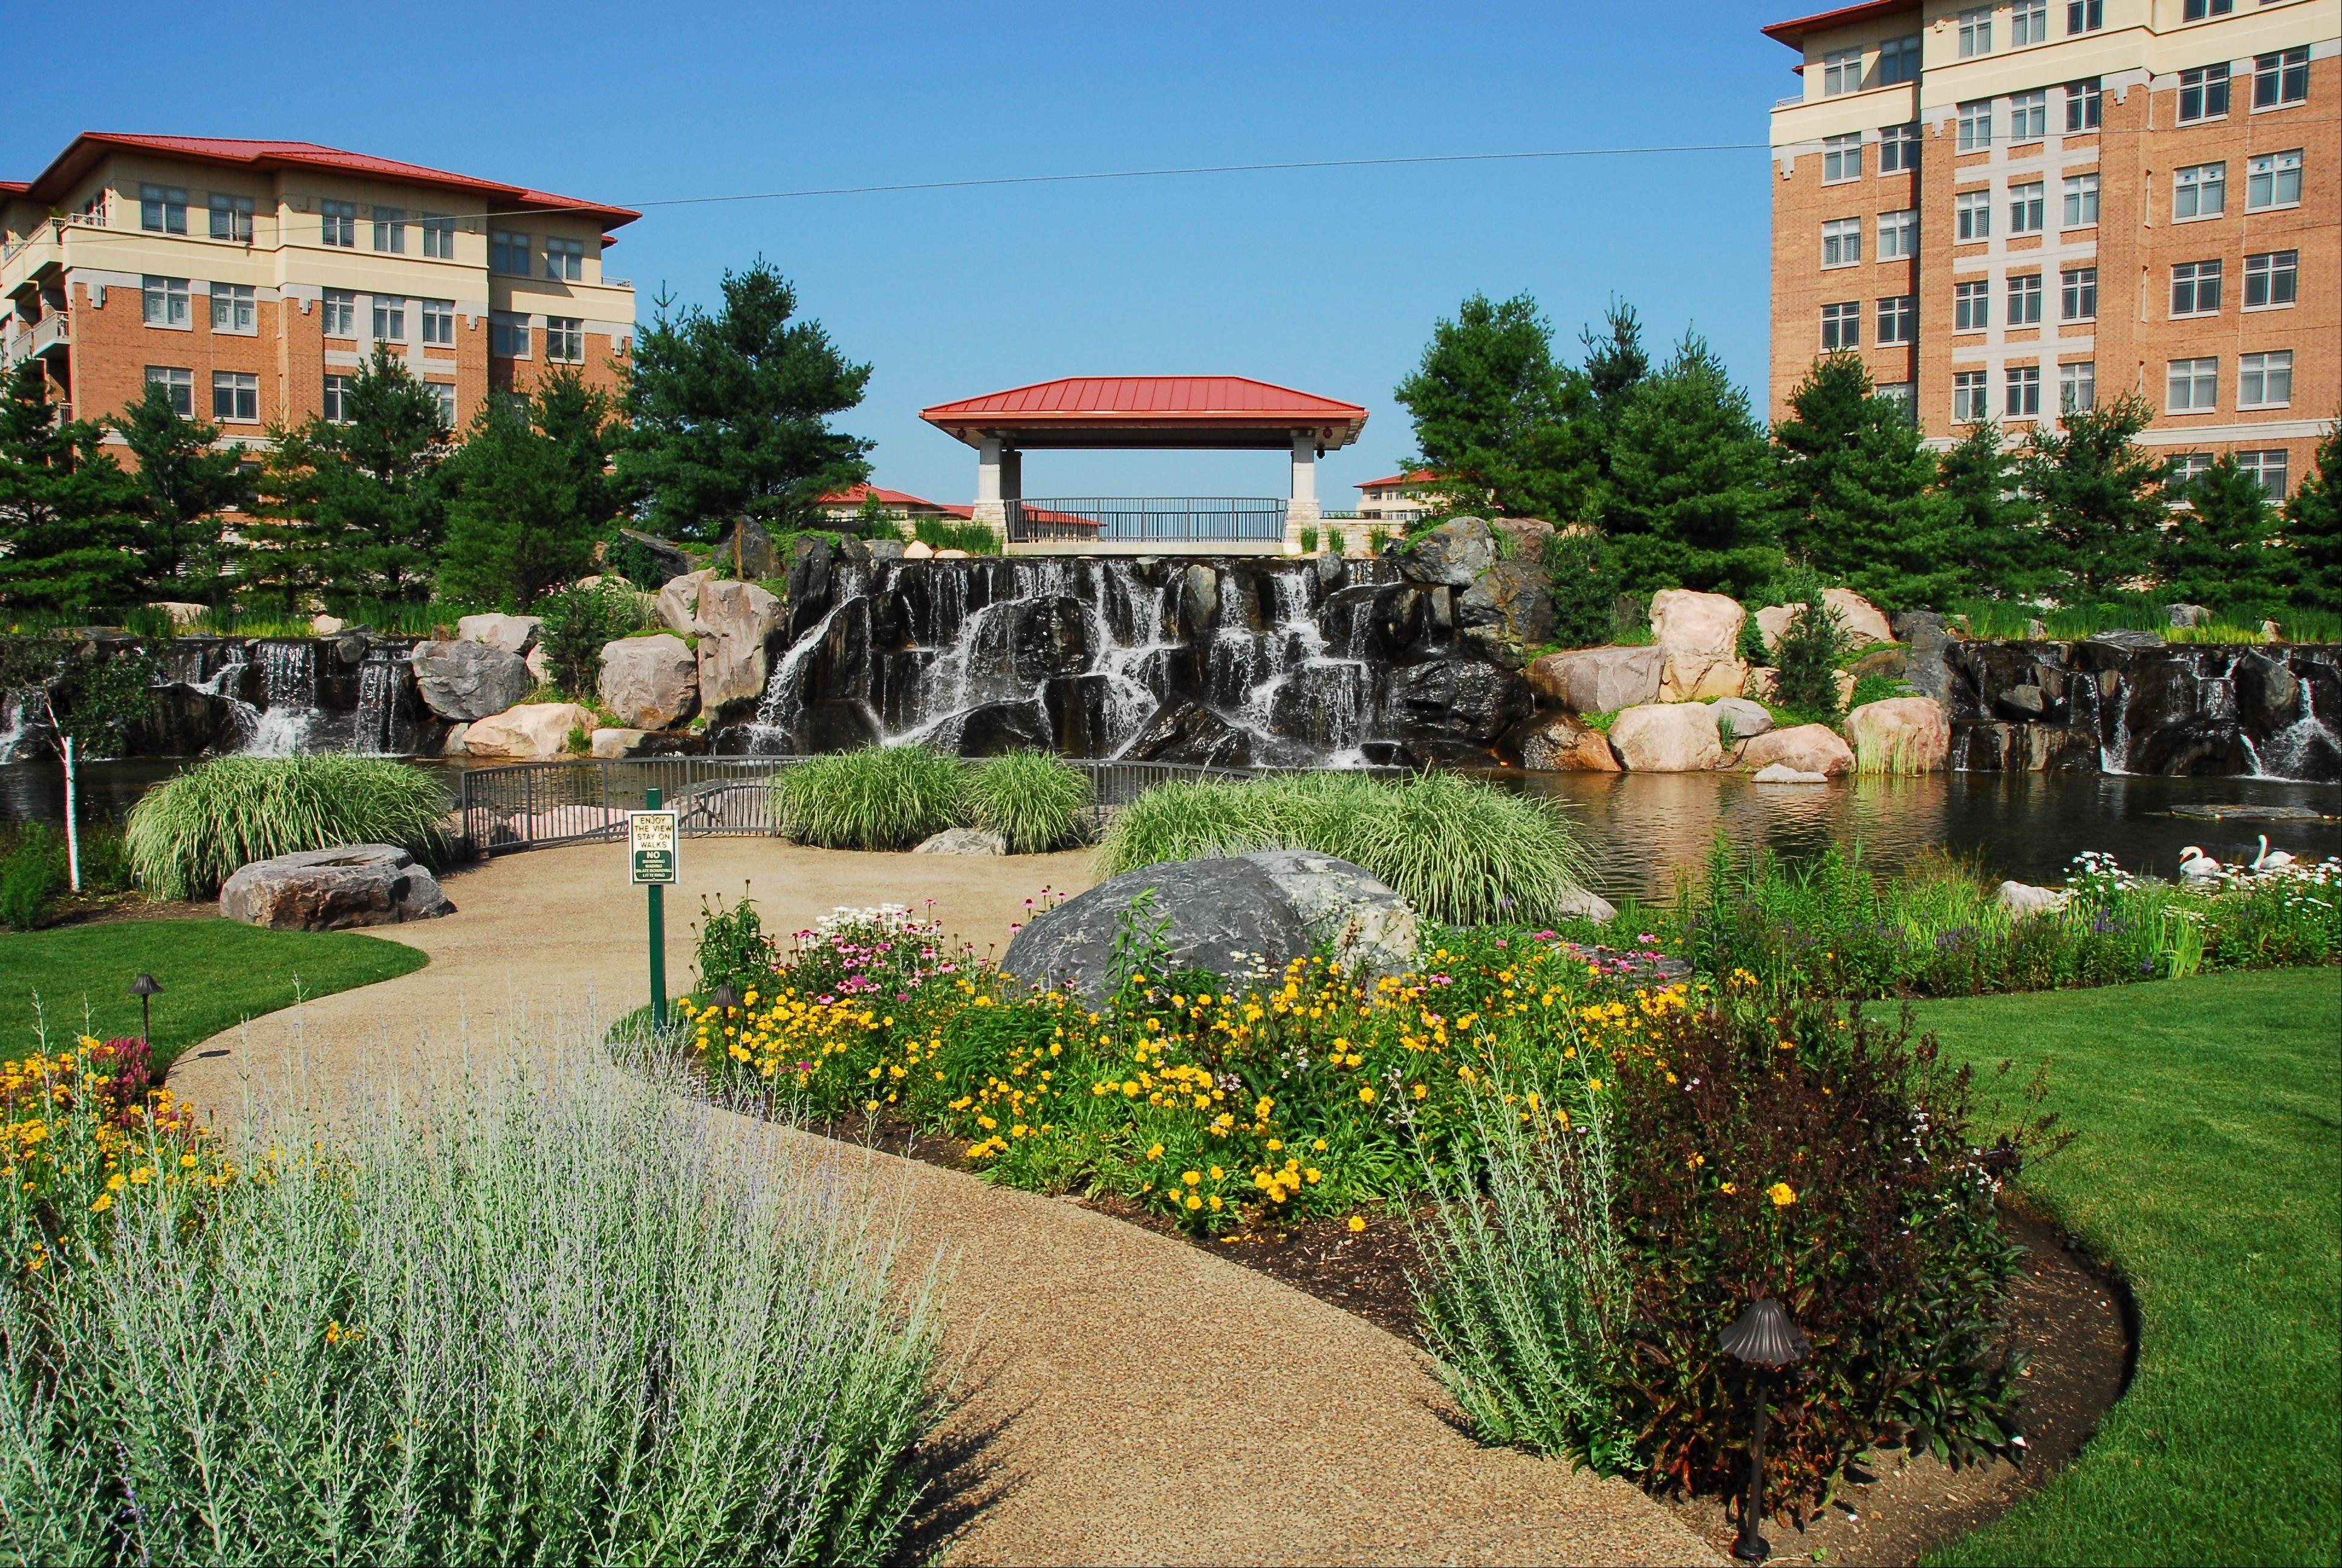 Prairie landscaping and a waterfall attract buyers and guests to the Prairie Park condominiums in Wheeling.